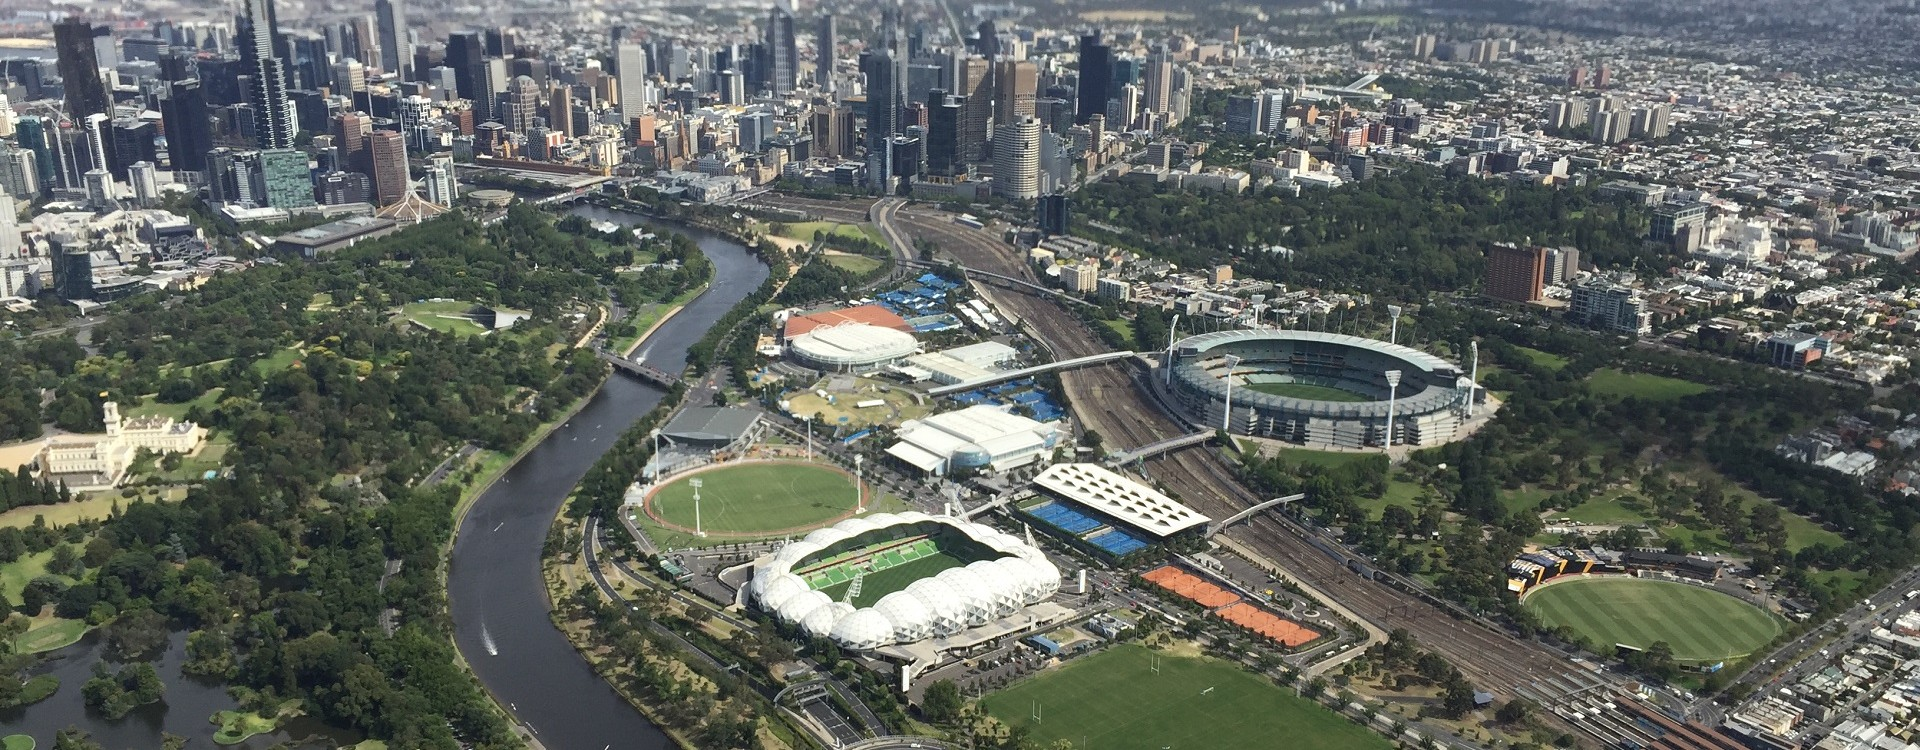 Our apartments are conveniently located next to Melbourne's CBD and sporting precinct